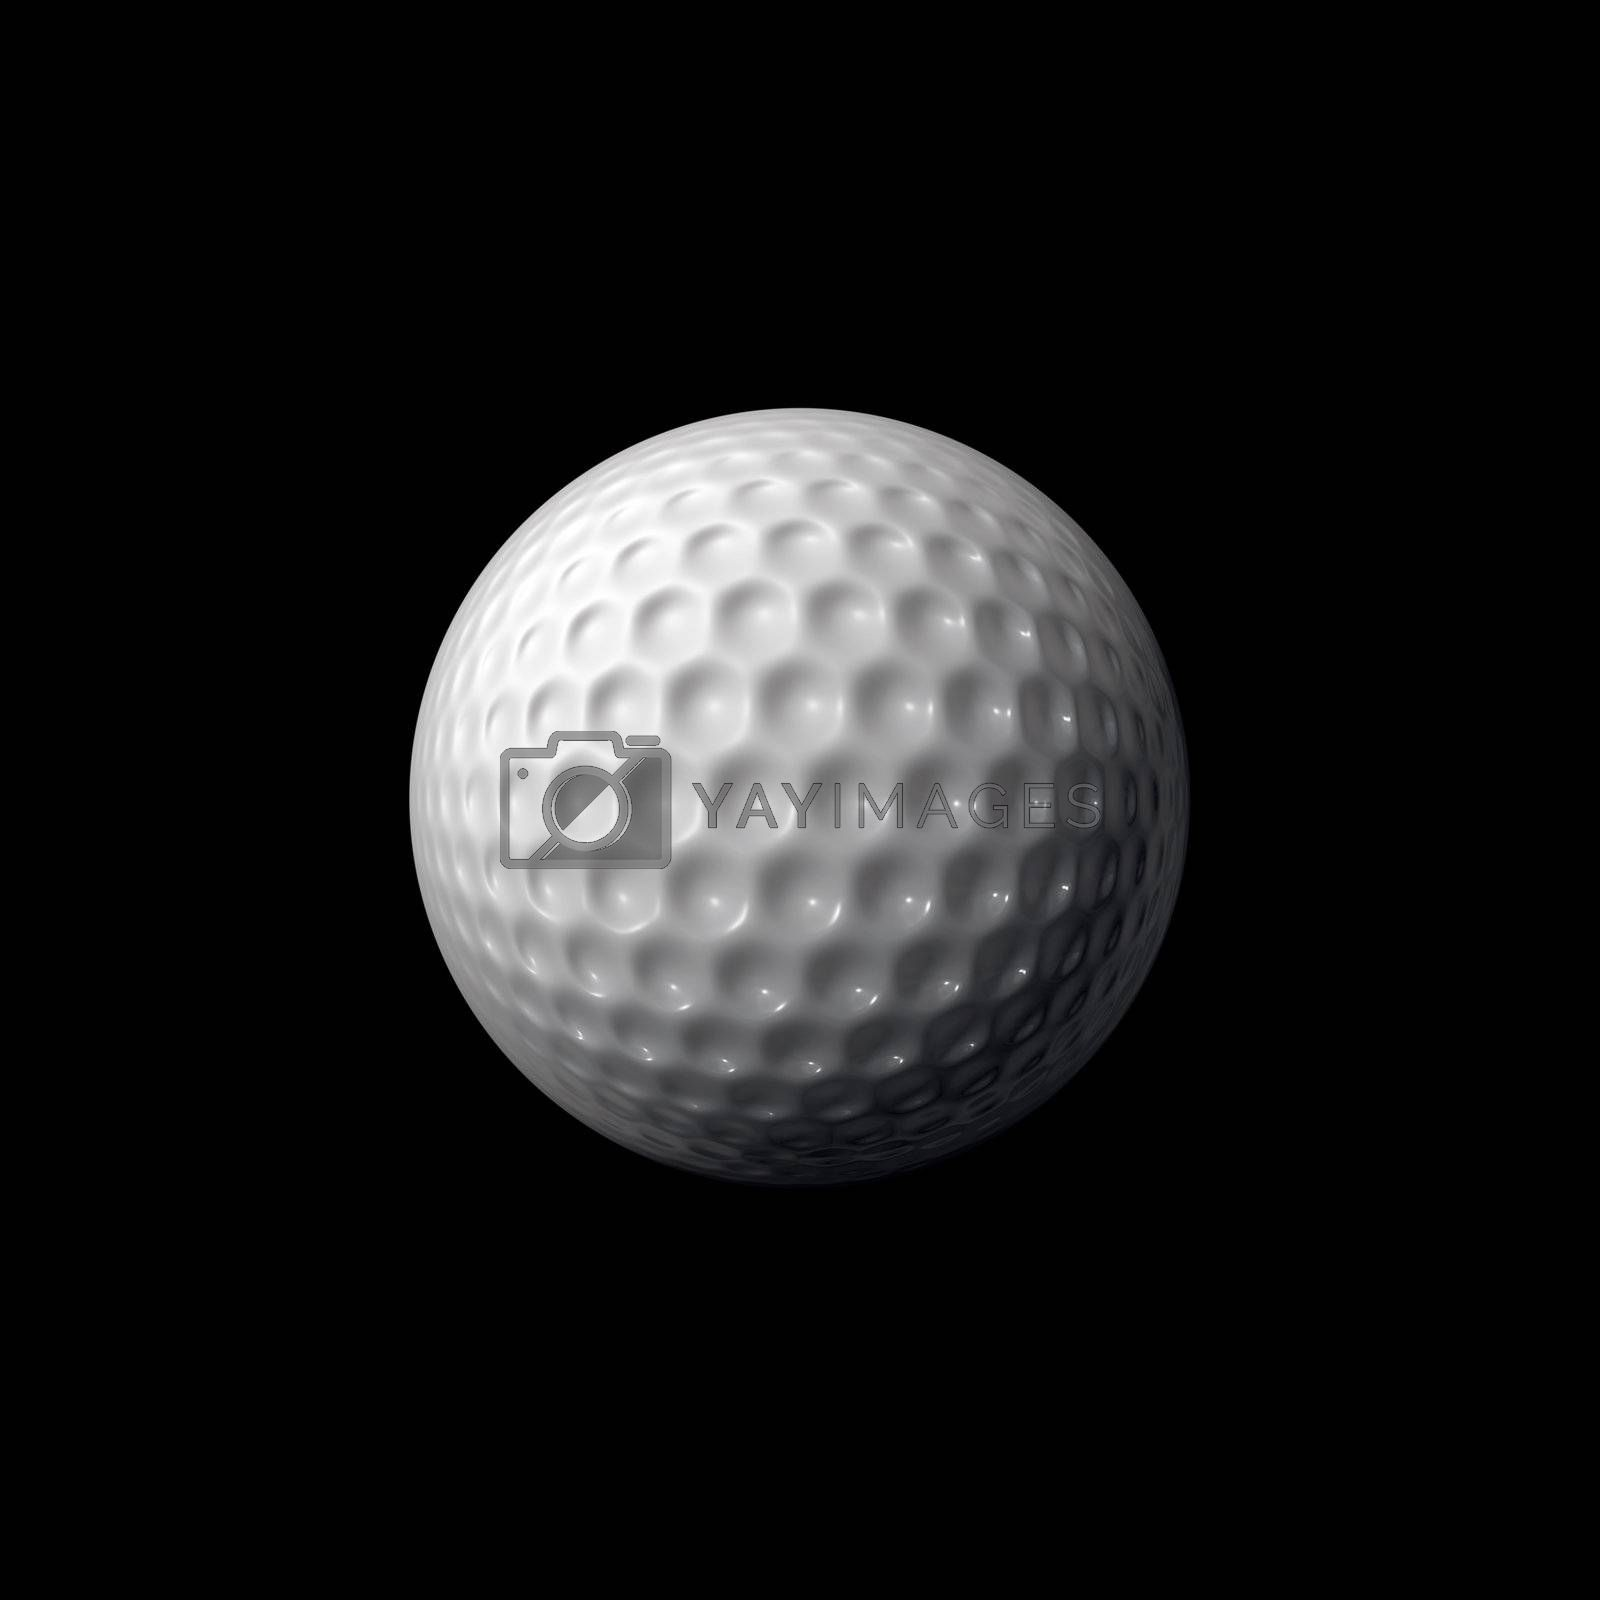 A white gold ball isolated over a black background.